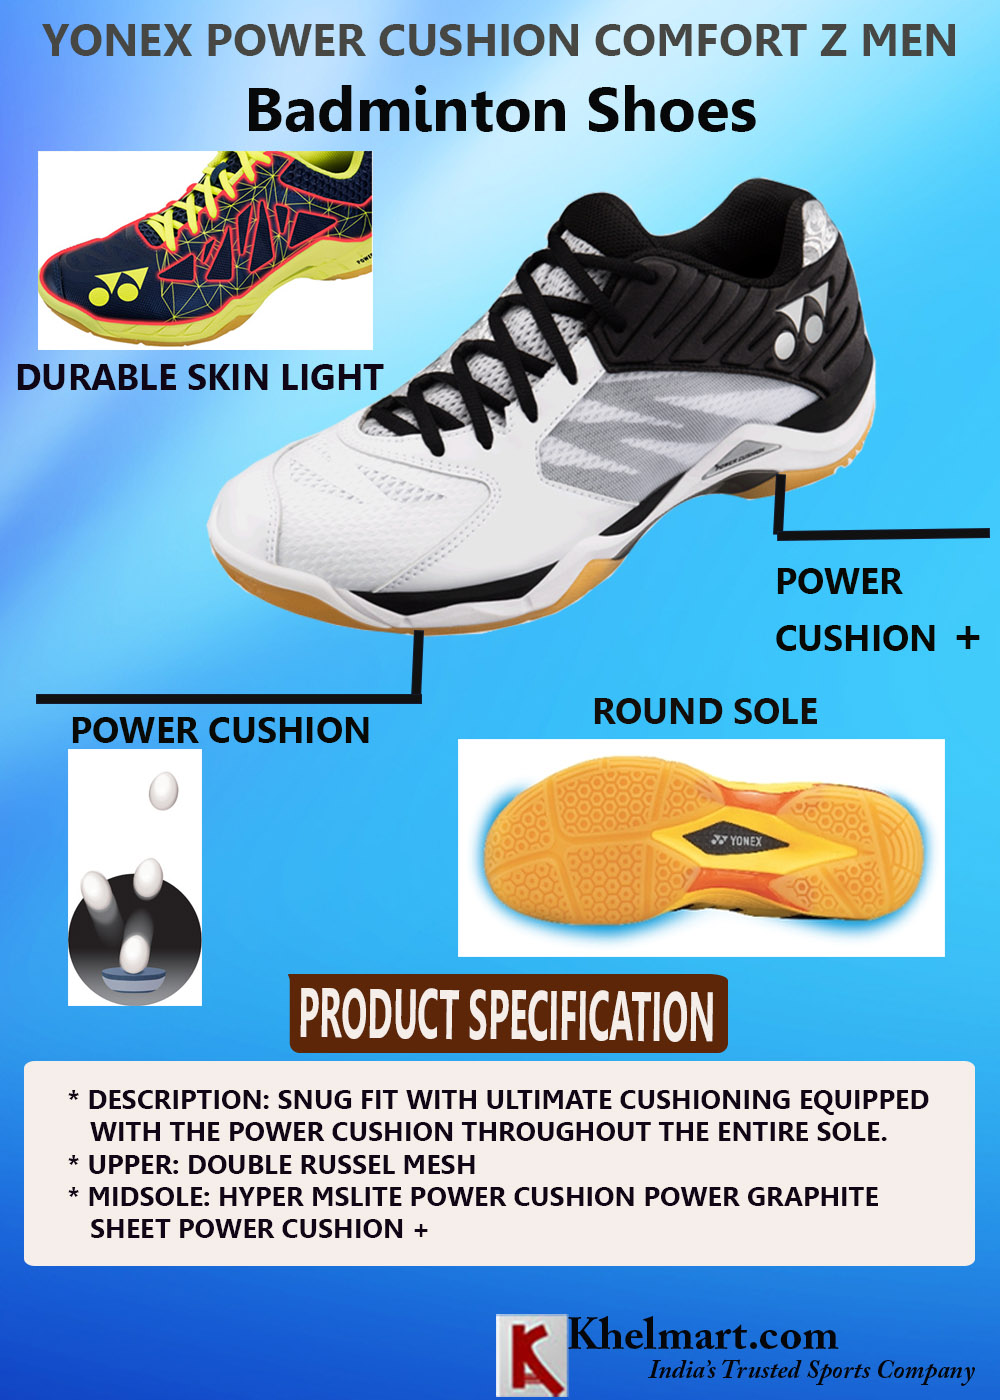 YONEX POWER CUSHION COMFORT Z MEN_5